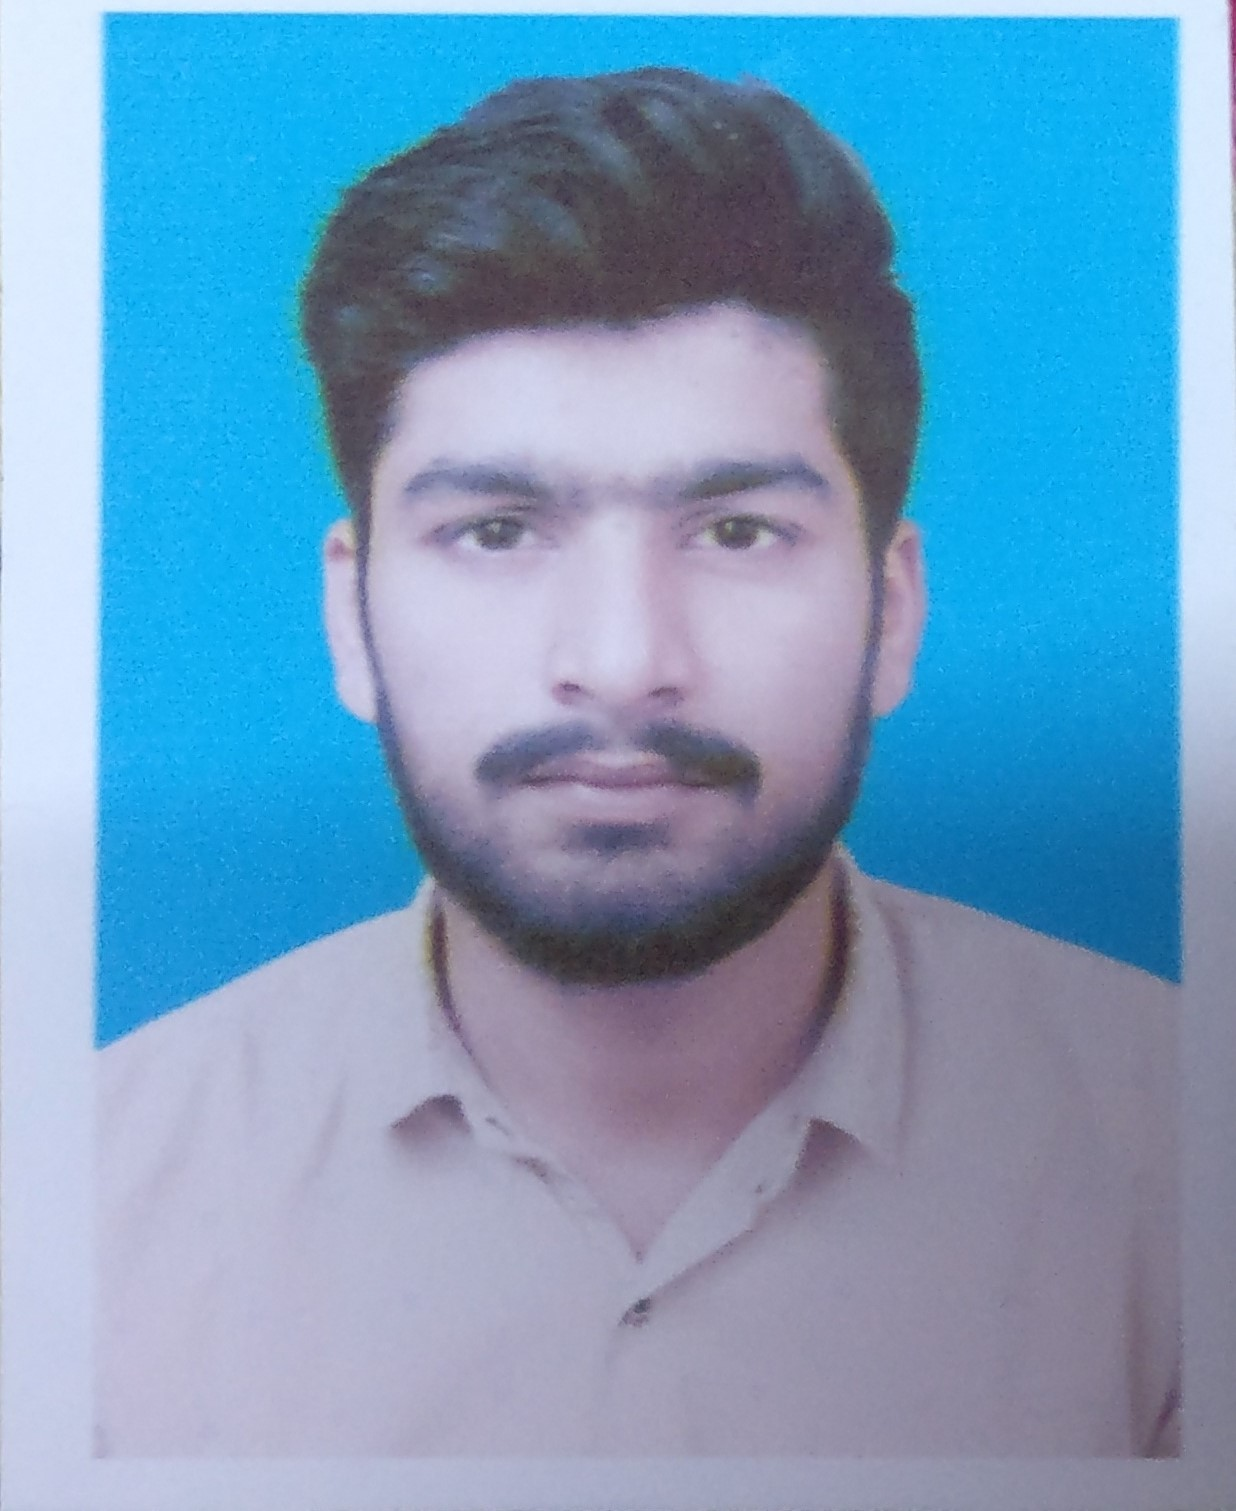 Hamza Akhlaq Animation, Chemical Engineering, Teaching/Lecturing, Sports, English (UK), English (US), Urdu, Hindi, Punjabi, Essay Writing